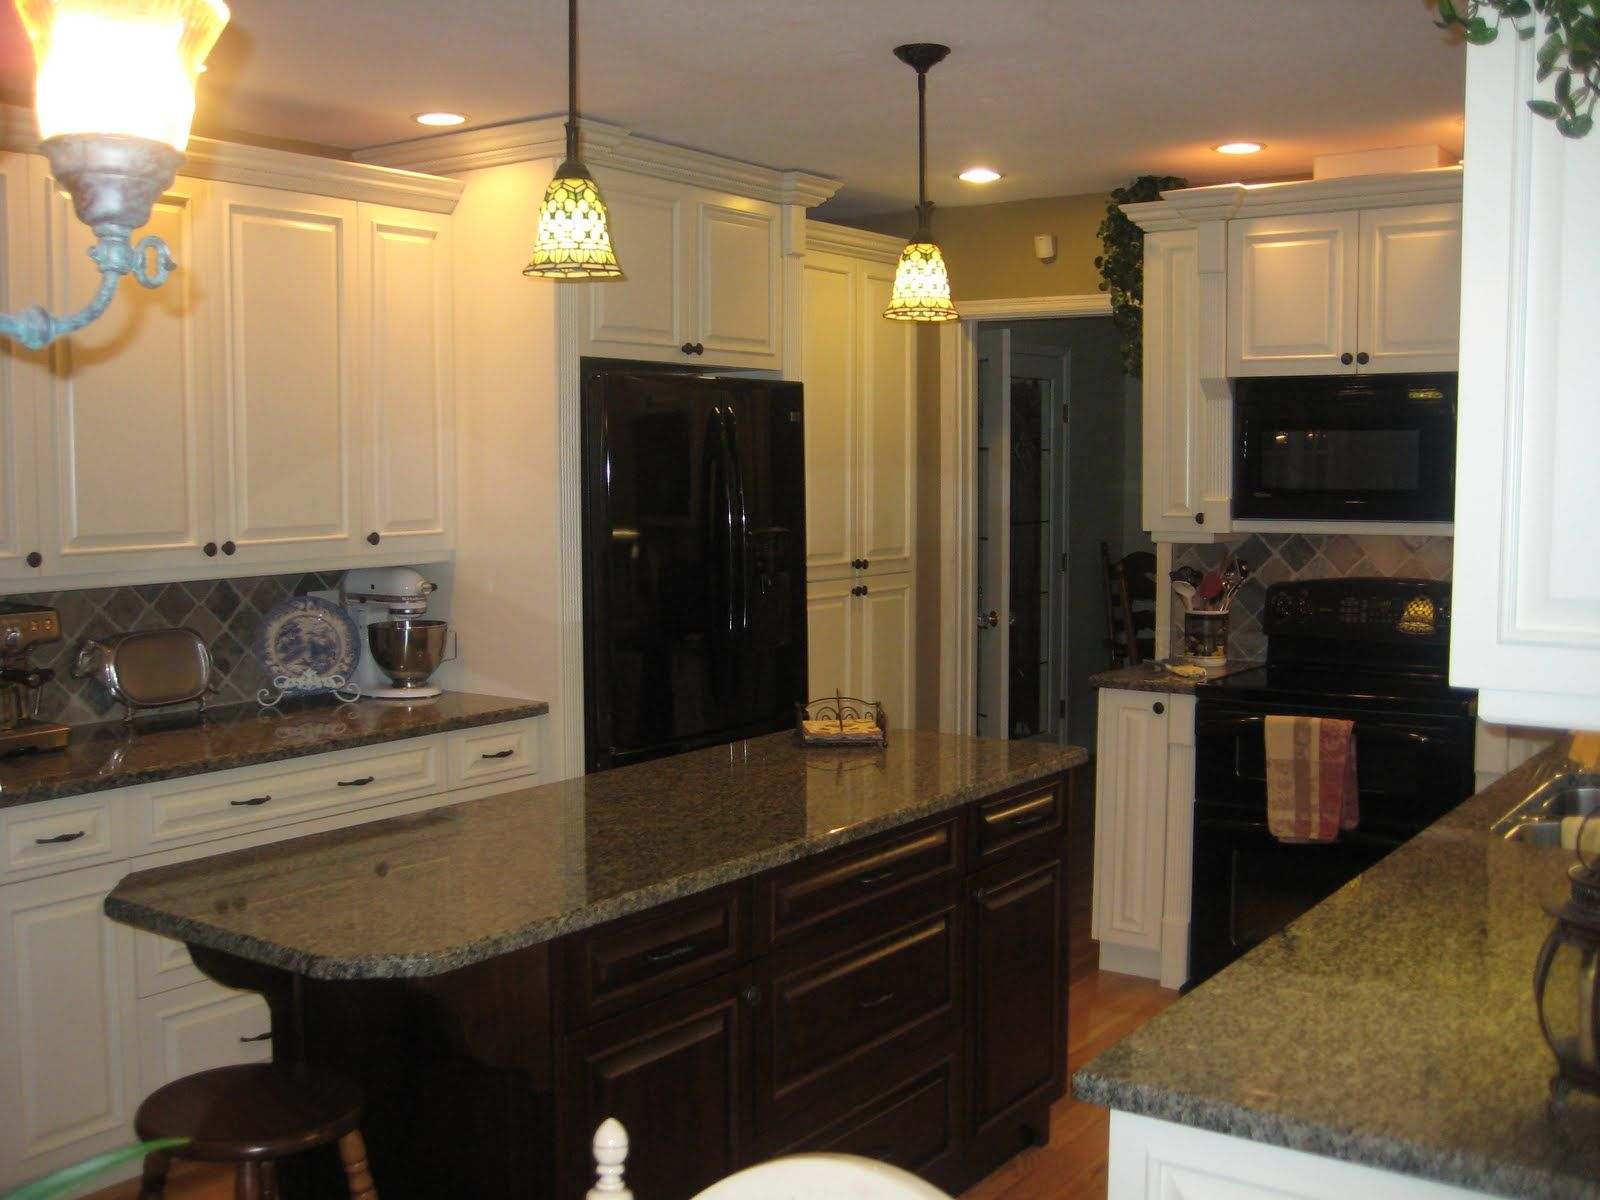 Dark Island White Cabinets Contrast Between The White Actual Black Countertops Kitchen Countertops Granite Colors Kitchen Cabinets With Black Appliances